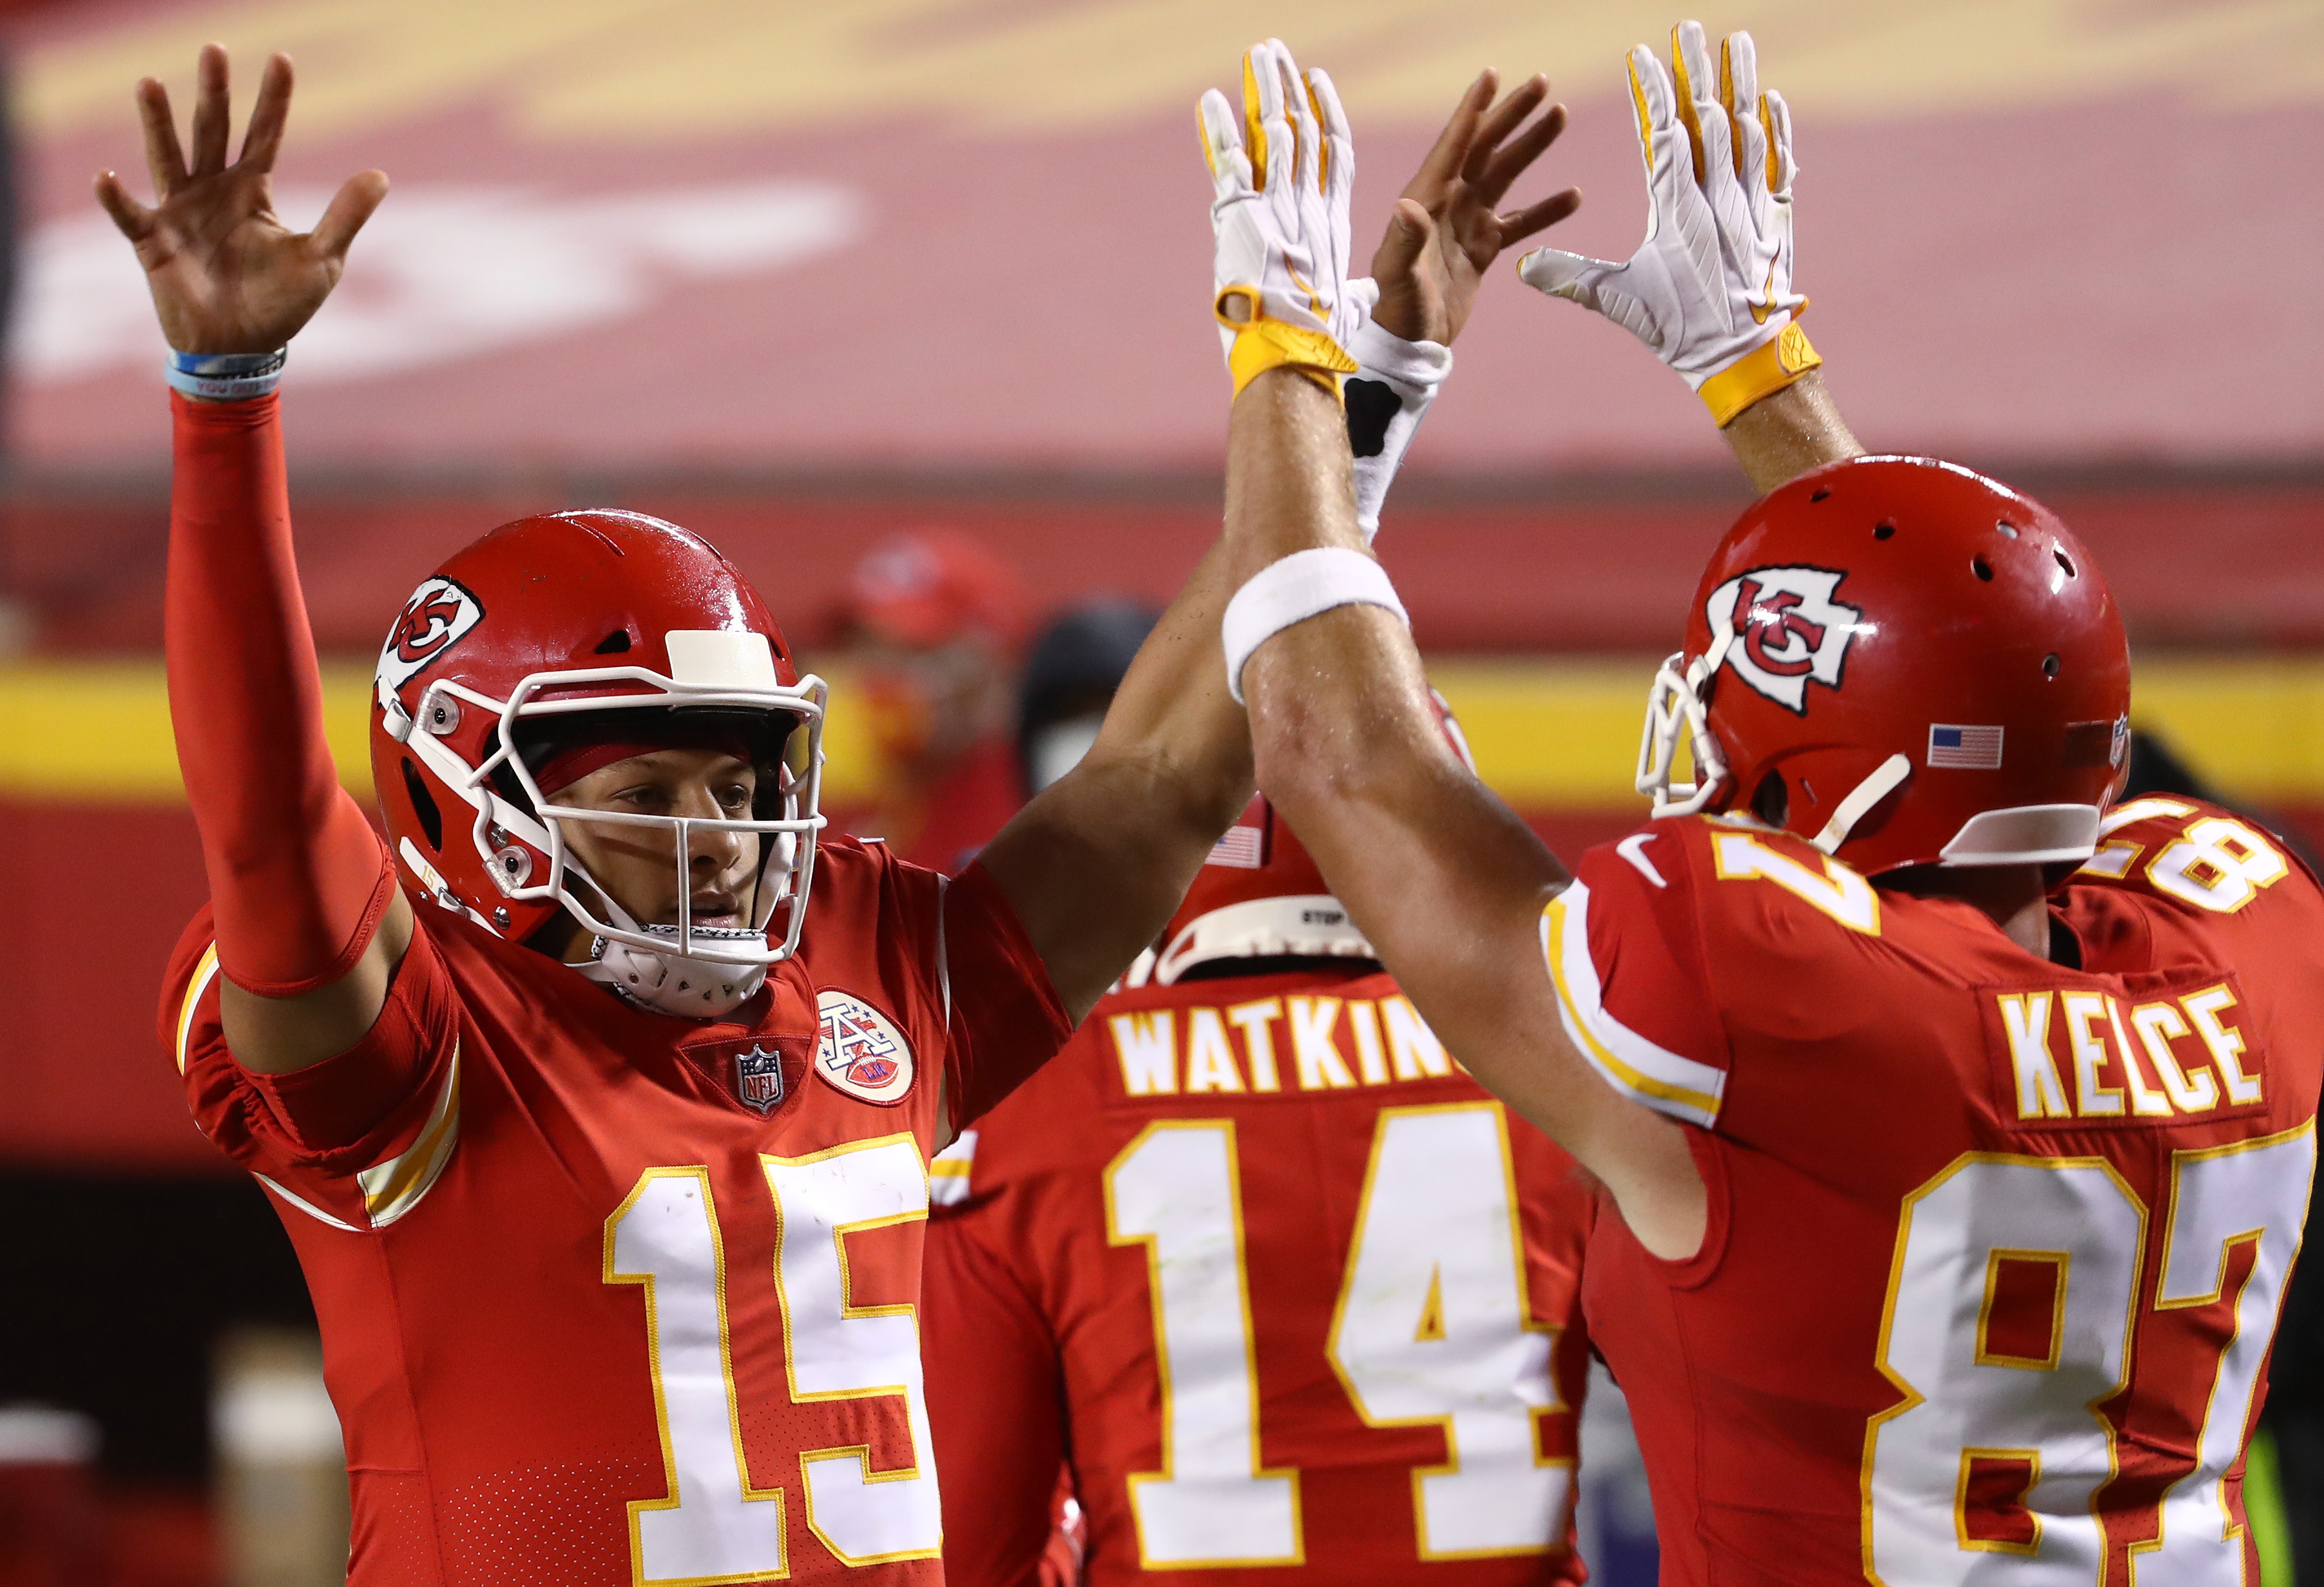 Patrick Mahomes #15 celebrates a touchdown with teammate Travis Kelce #87 of the Kansas City Chiefs during the second quarter against the Houston Texans at Arrowhead Stadium on September 10, 2020 in Kansas City, Missouri.